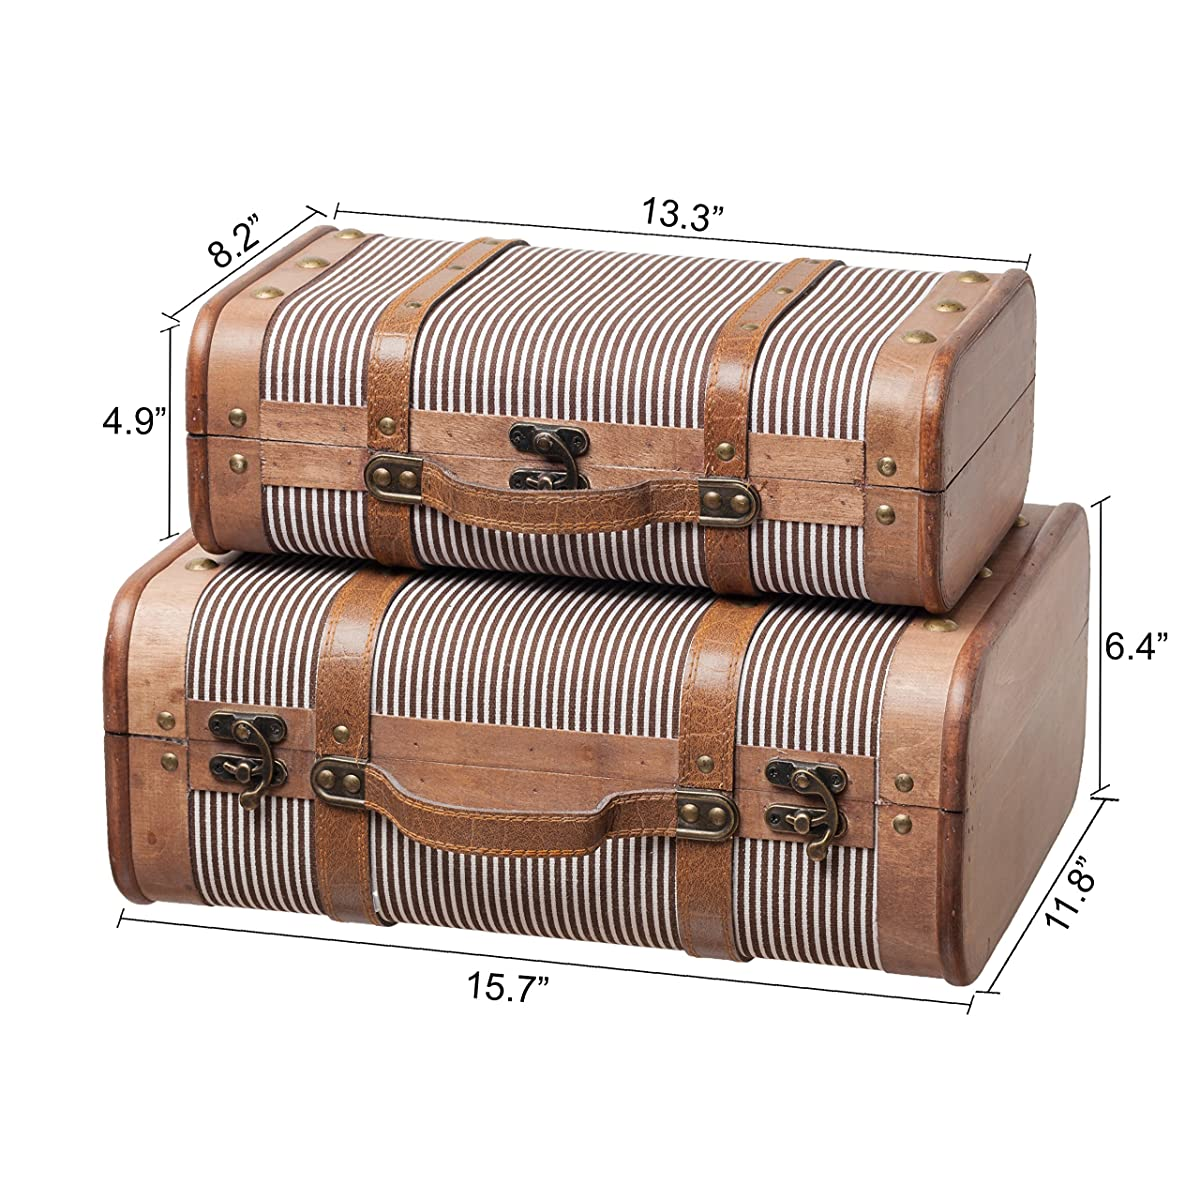 SLPR Decorative Suitcase with Straps (Set of 2, Striped) | Old-Fashioned Antique Vintage Style Nesting Trunks for Shelf Home Decor Birthday Parties Wedding Decoration Displays Crafts Photoshoots